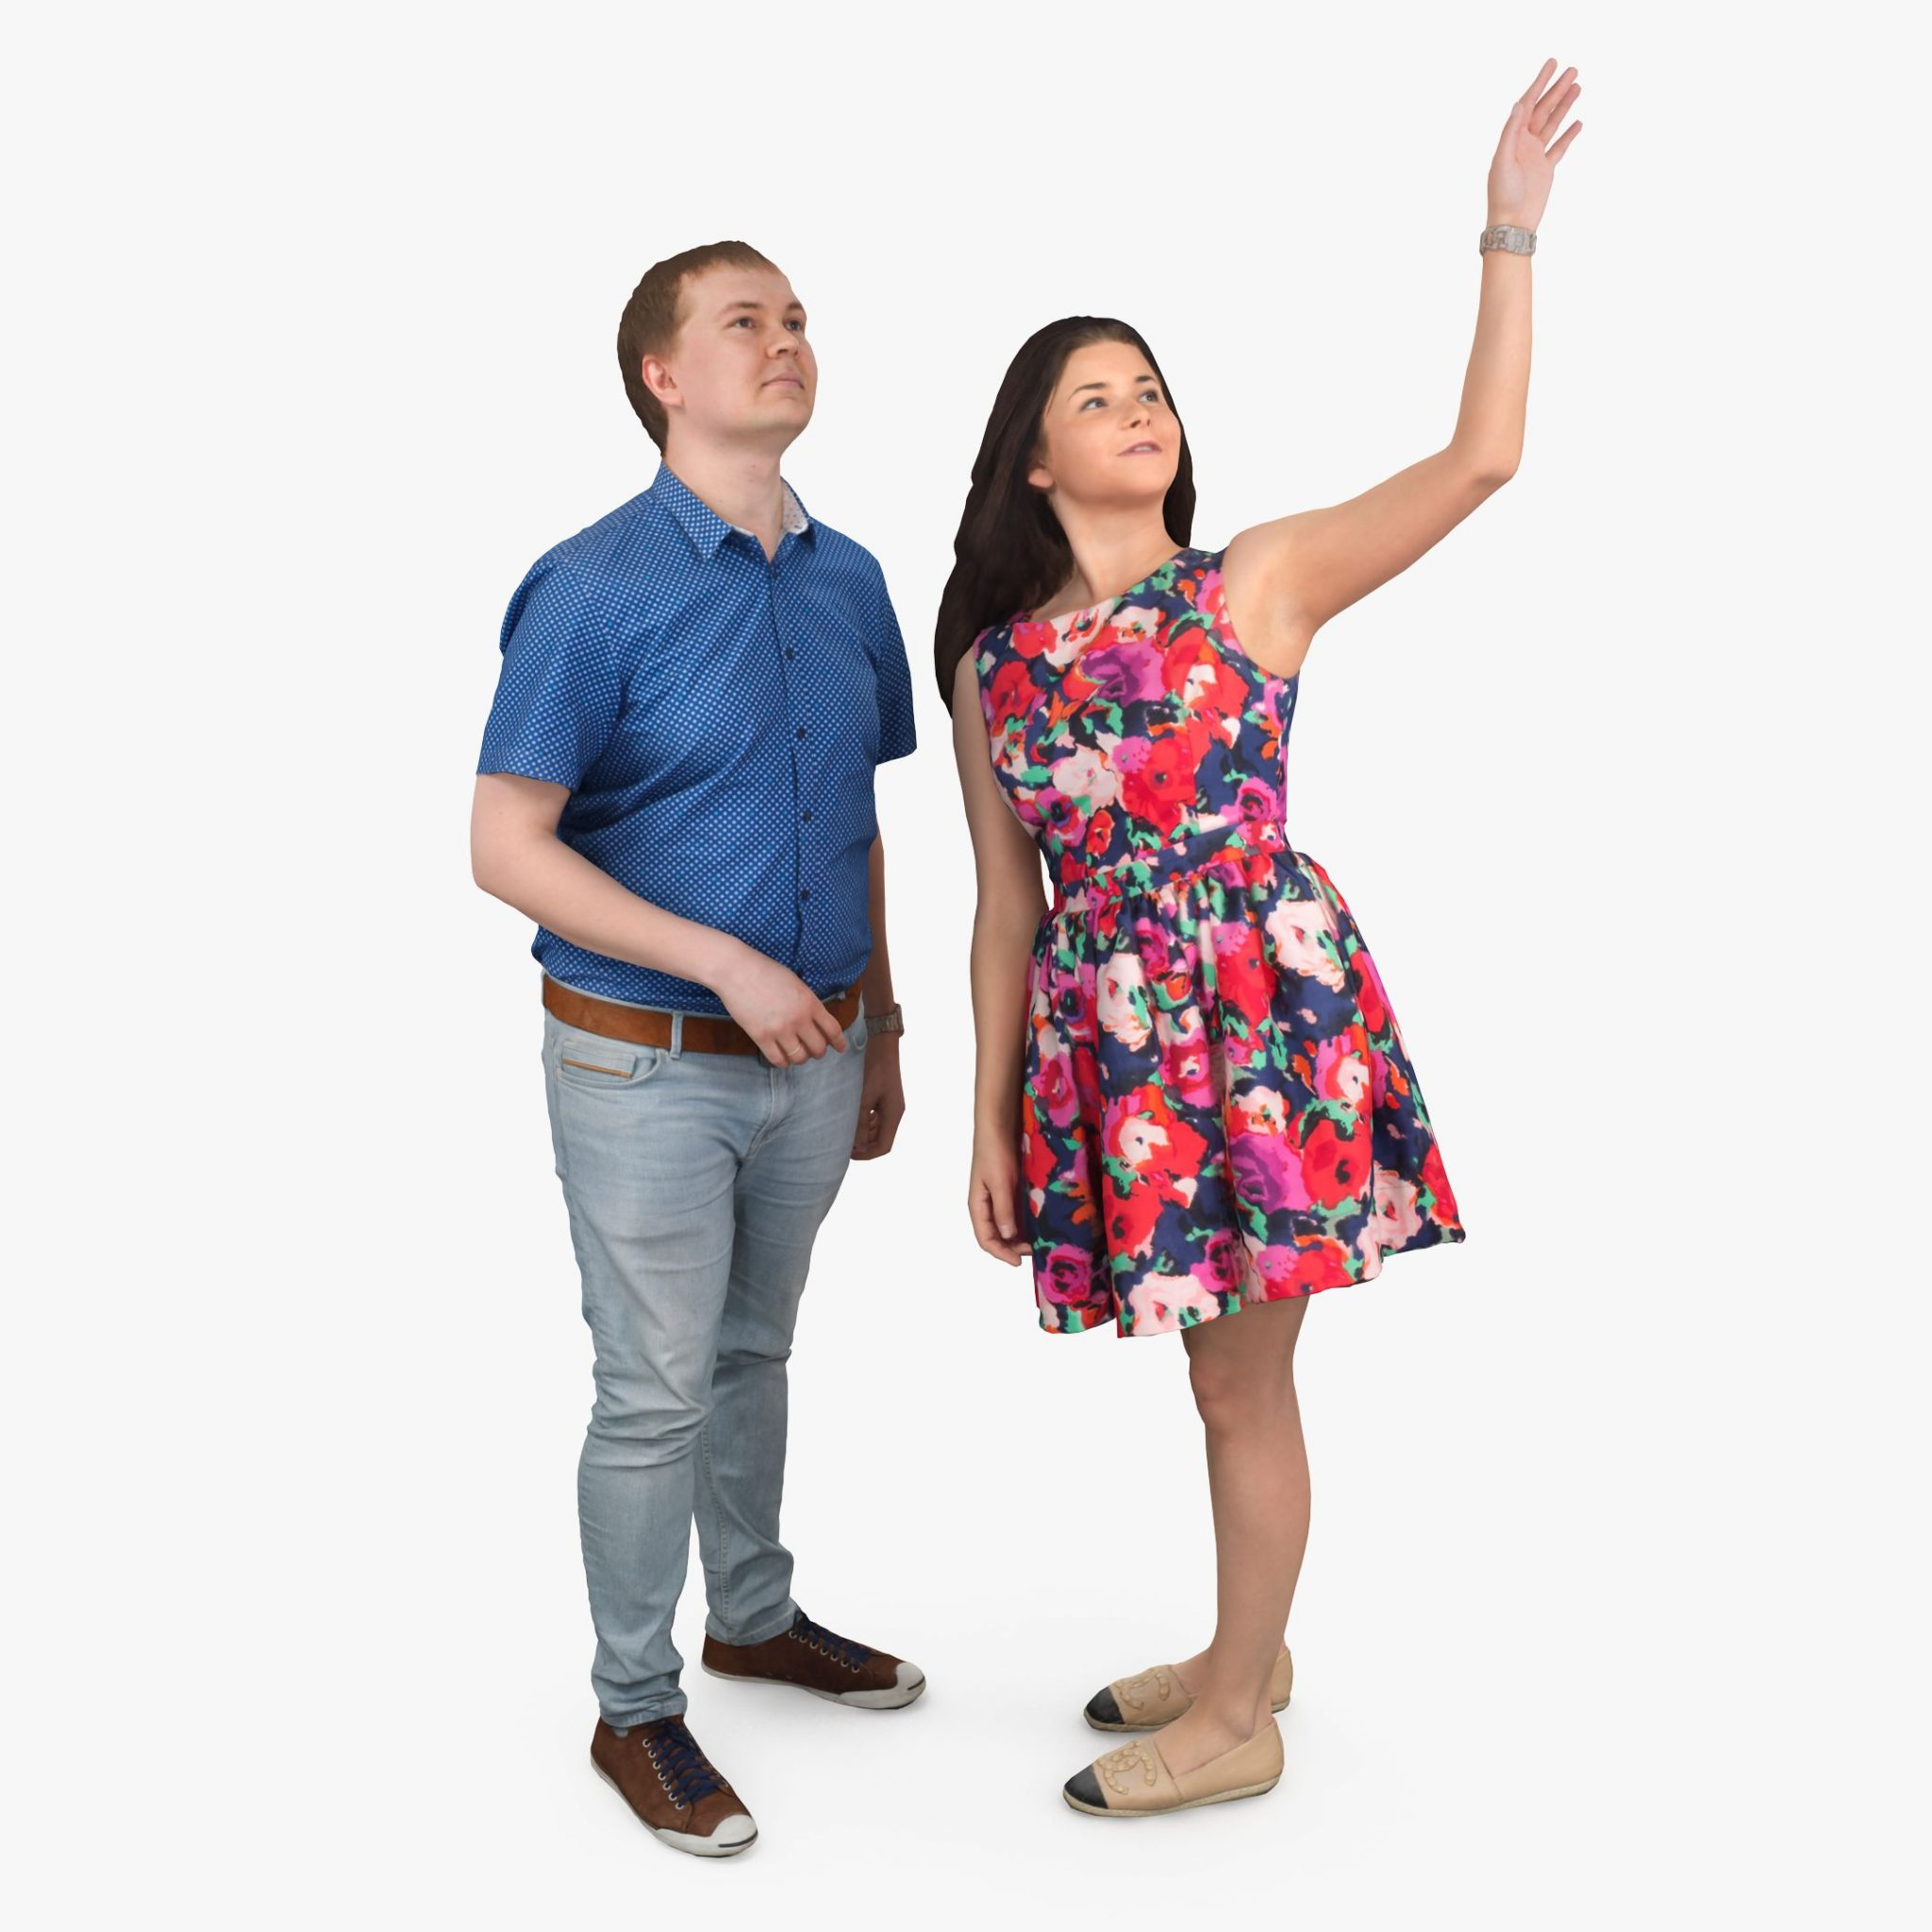 Man and Woman 3D Models | 3DTree Scanning Studio